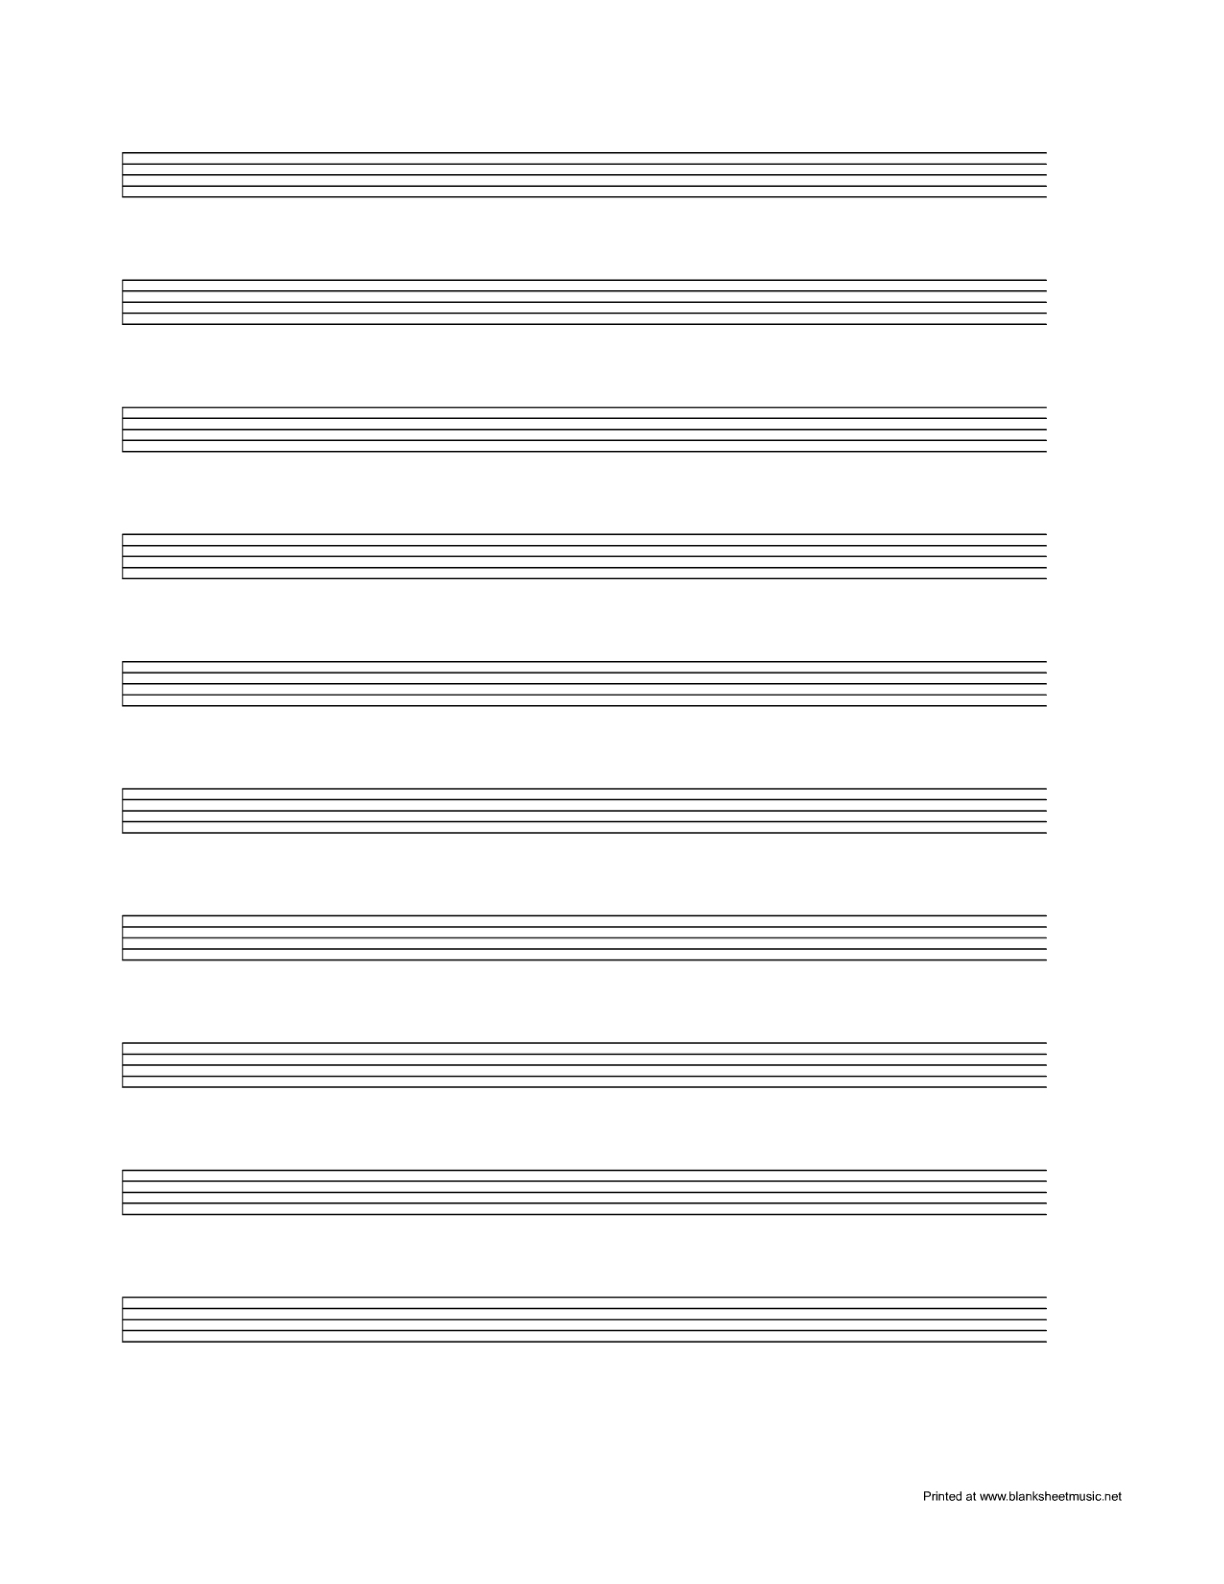 Free Blank Staff Cliparts, Download Free Clip Art, Free Clip Art On - Free Printable Music Staff